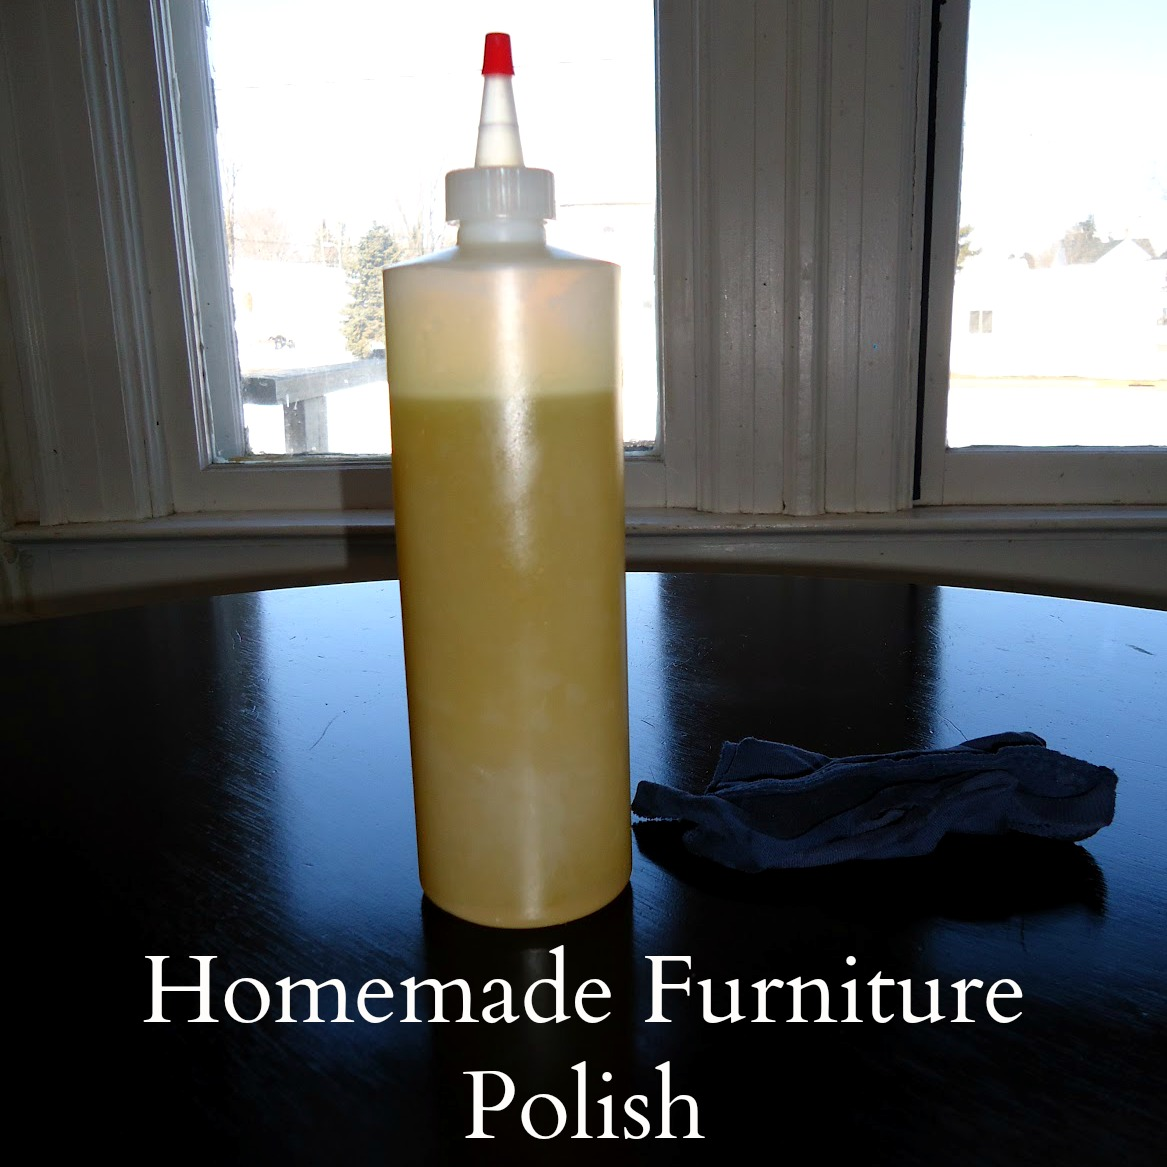 Homemade furniture polish ii for Homemade organic furniture polish